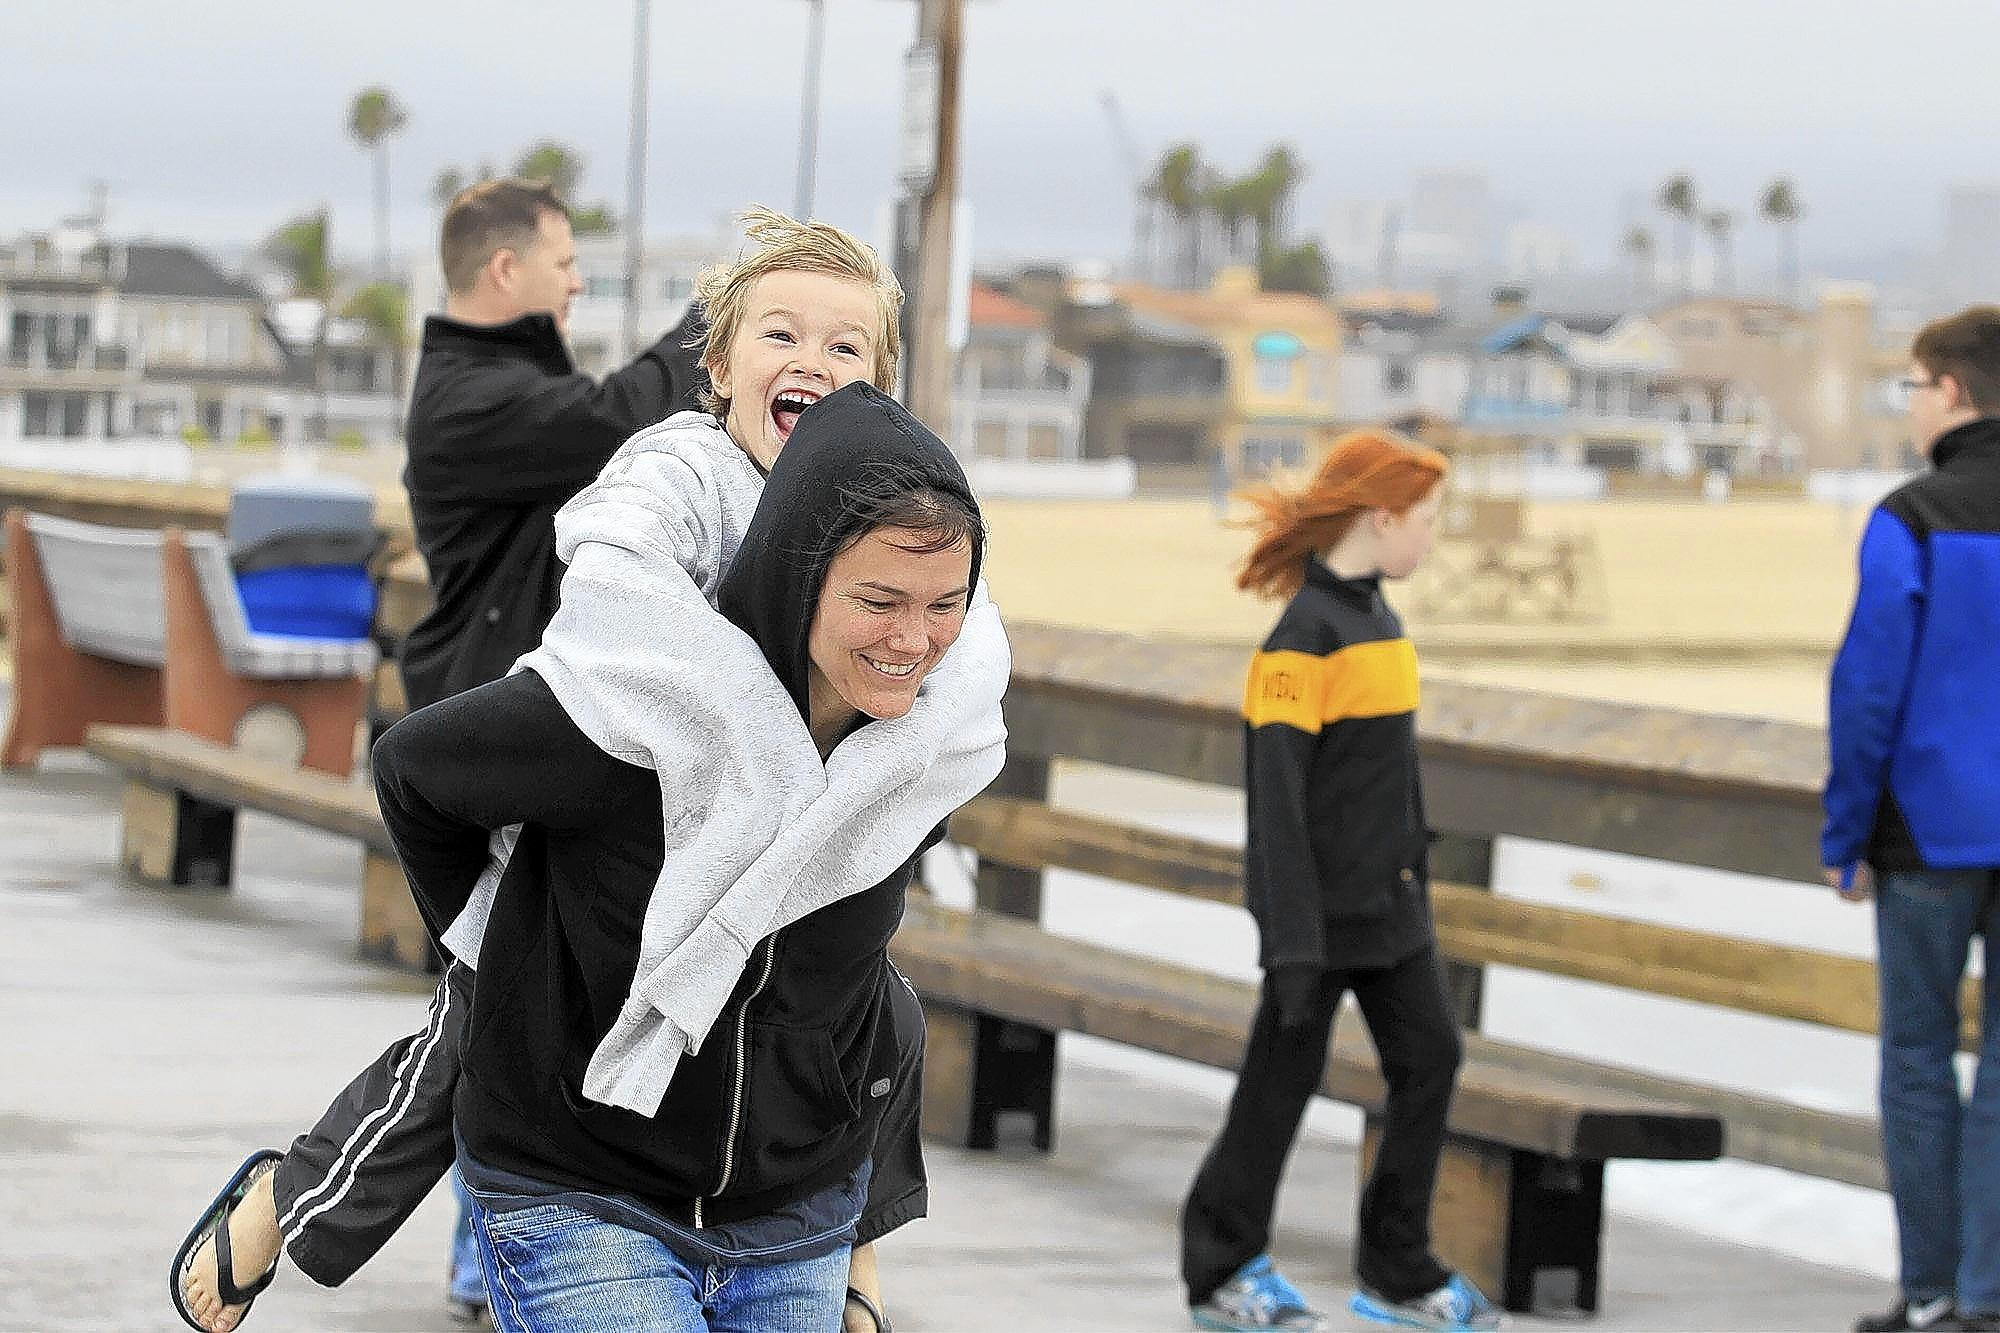 Alex Nef, 4, of Las Vegas holds on tight to his mother, Sally, as she runs toward the end of Newport Beach Pier on a cloudy and drizzly Friday afternoon.